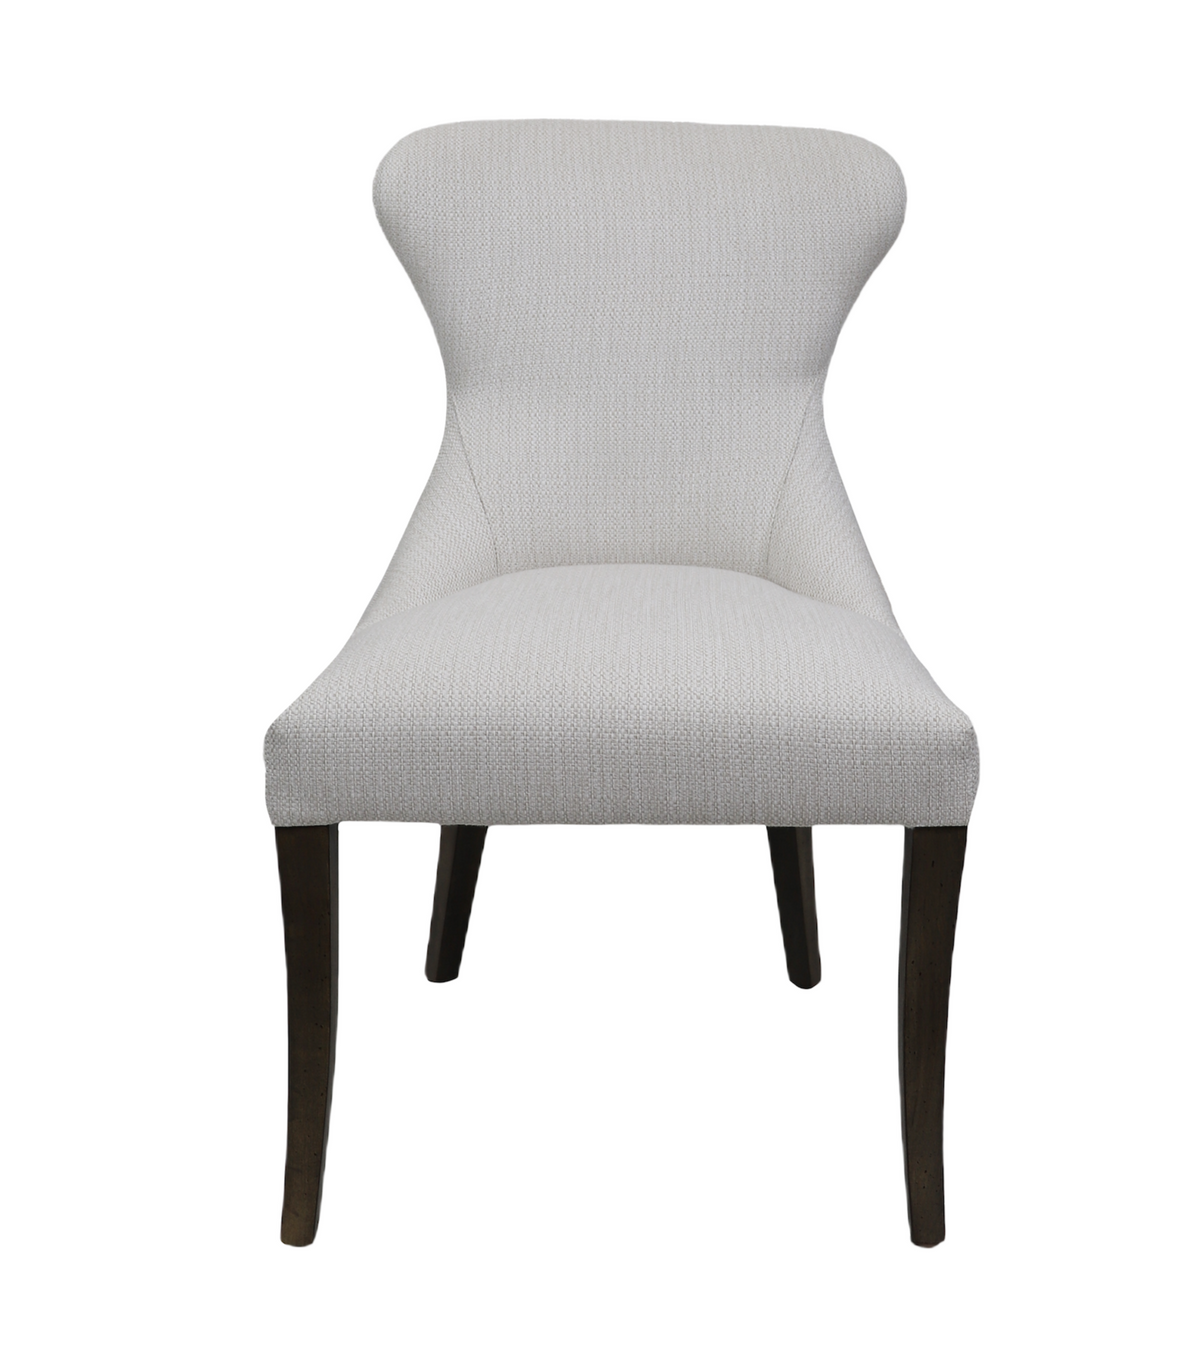 Curved Back Dining Chair in Perennials Raffia Chalk in Fawn Finish